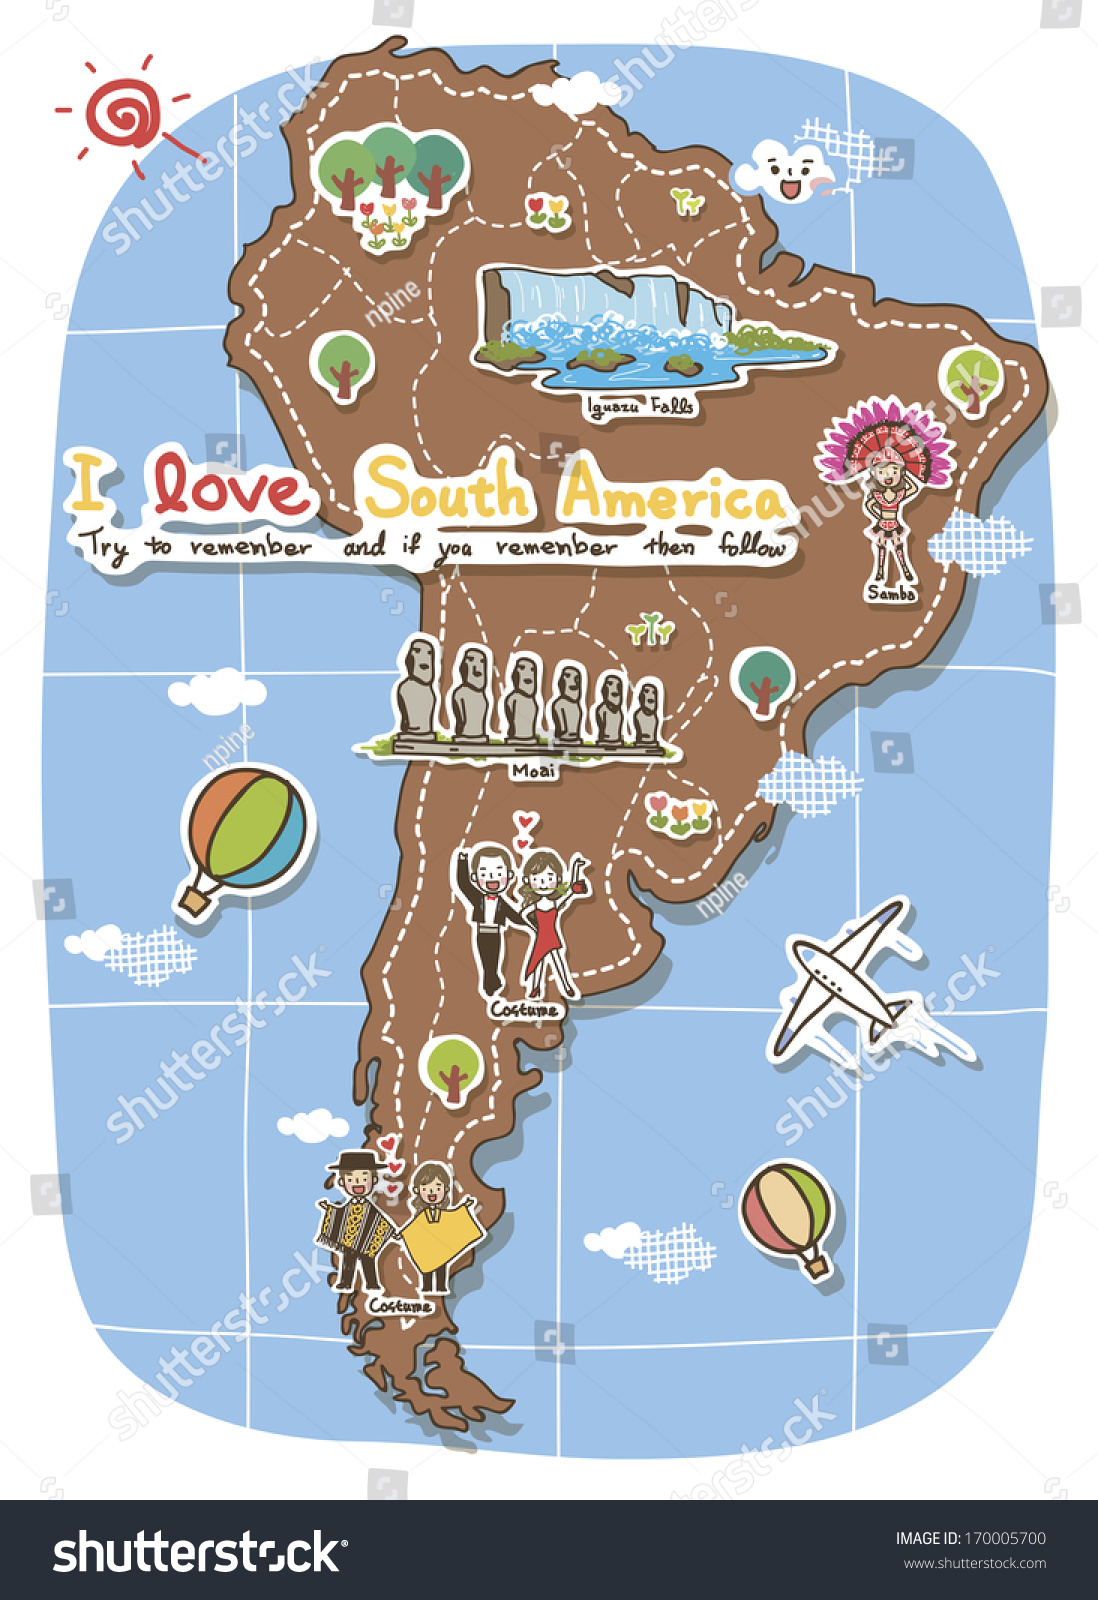 Map South America Depicting Tourist Destinations – South America Travel Map